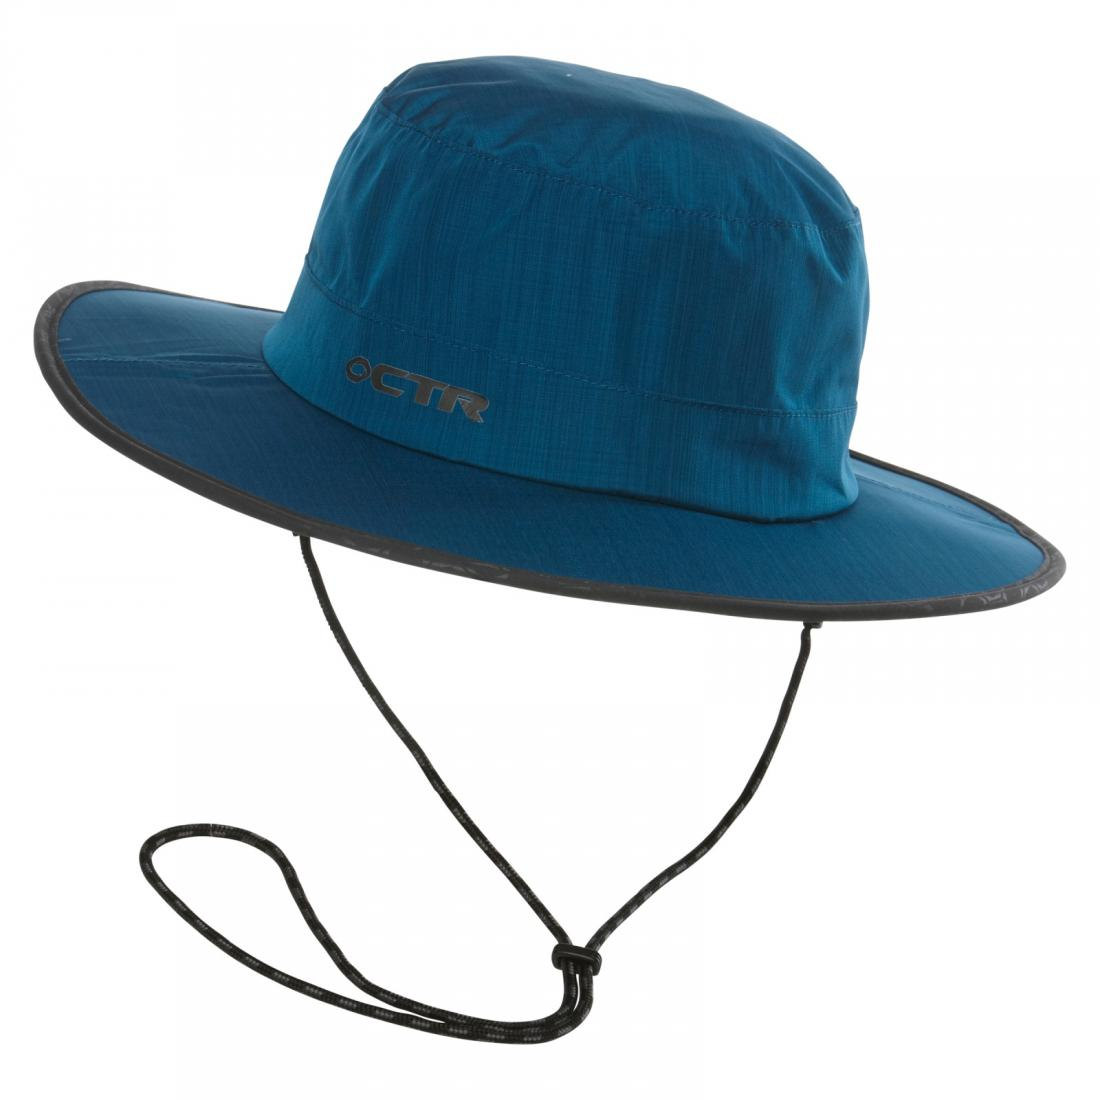 Chaos Панама Stratus Boat Hat (L-XL, 459 SEA PORT, ,)